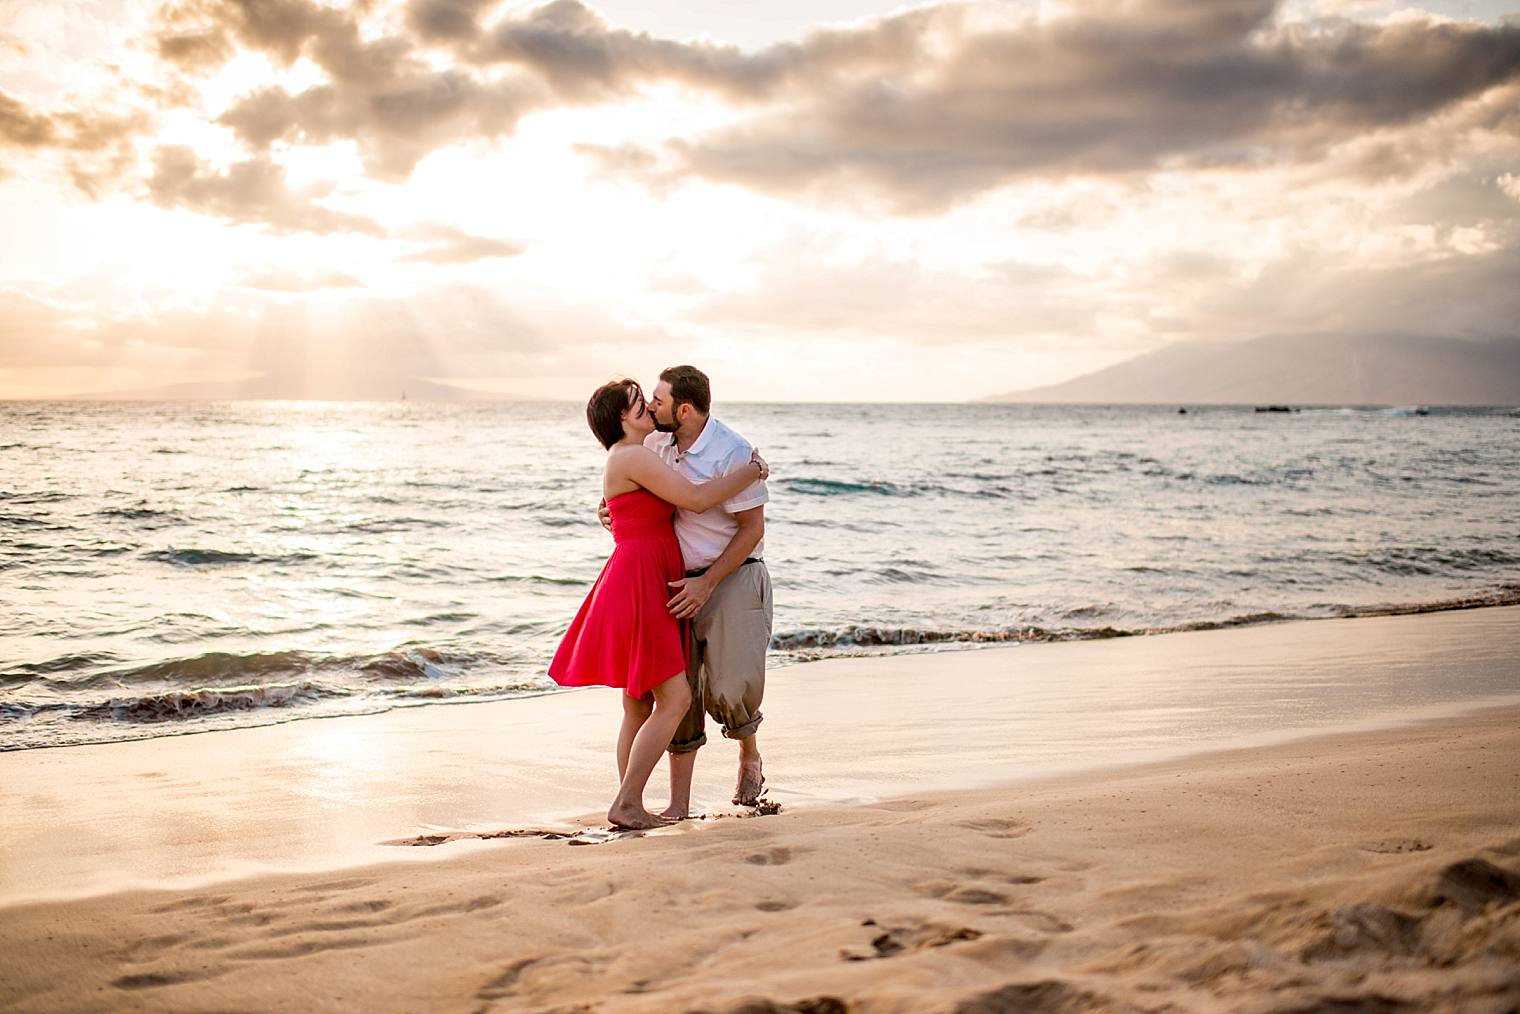 sunset on beach in maui just engaged